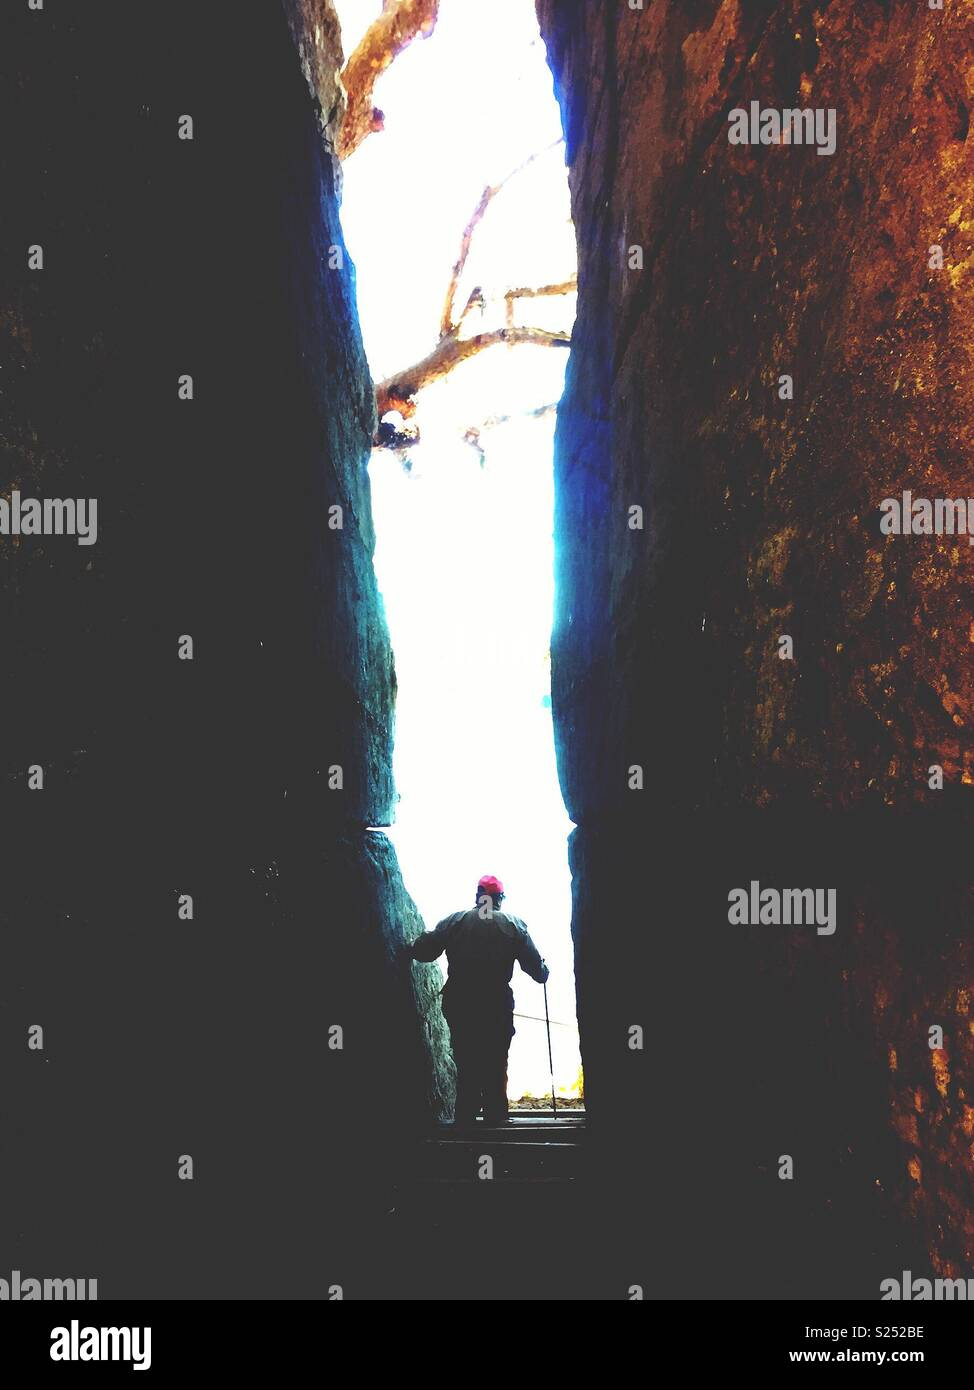 Hiker walks through rock chasm.  Exploring wilderness, silhouette person  being dwarfed by nature - Stock Image